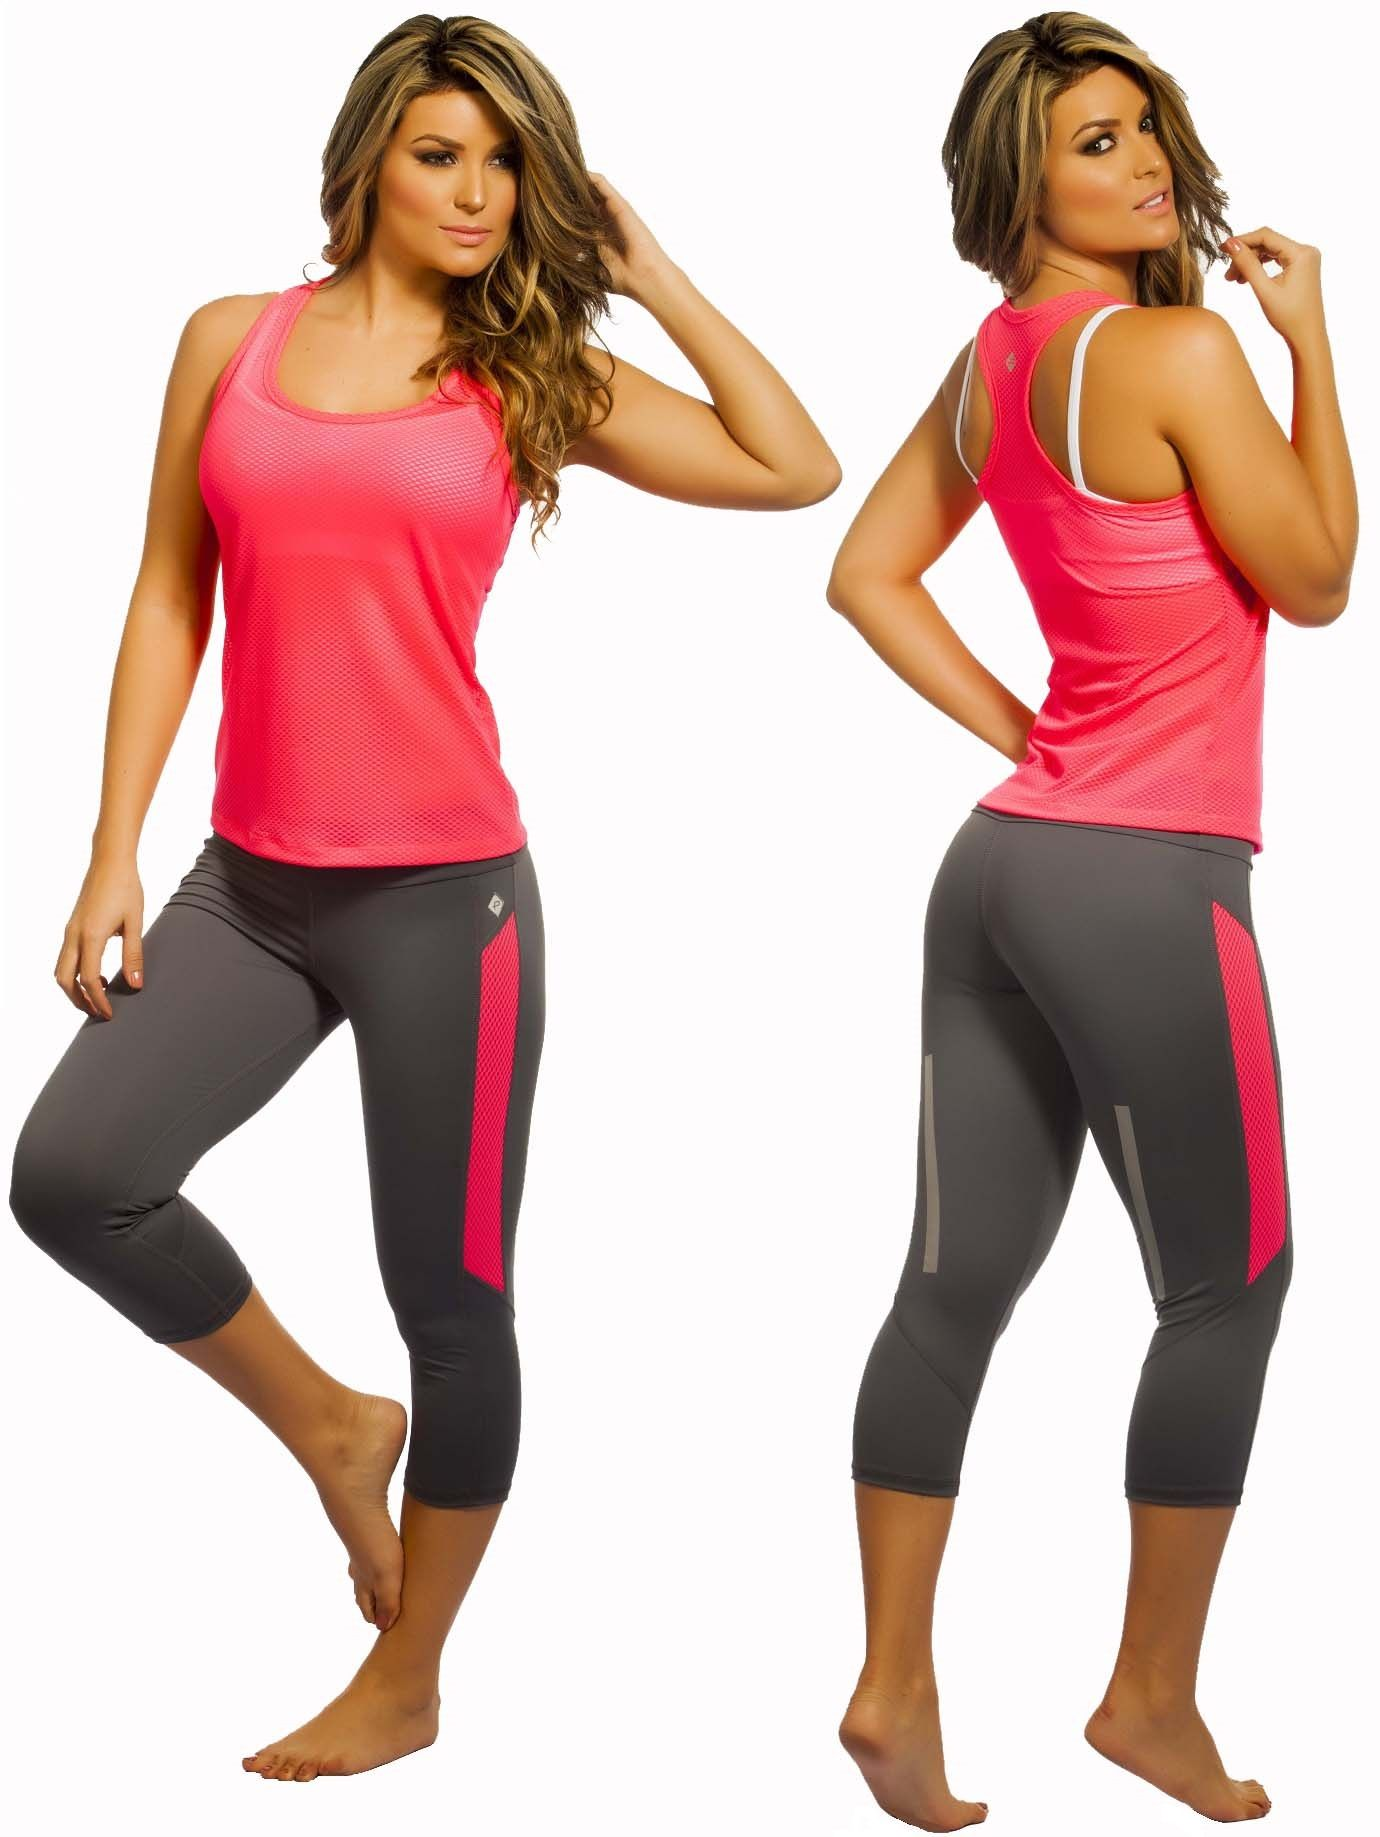 NelaSportswear | Womenu0026#39;s Fitness Activewear Workout Clothes ... | Health U0026 Fitness | Pinterest ...